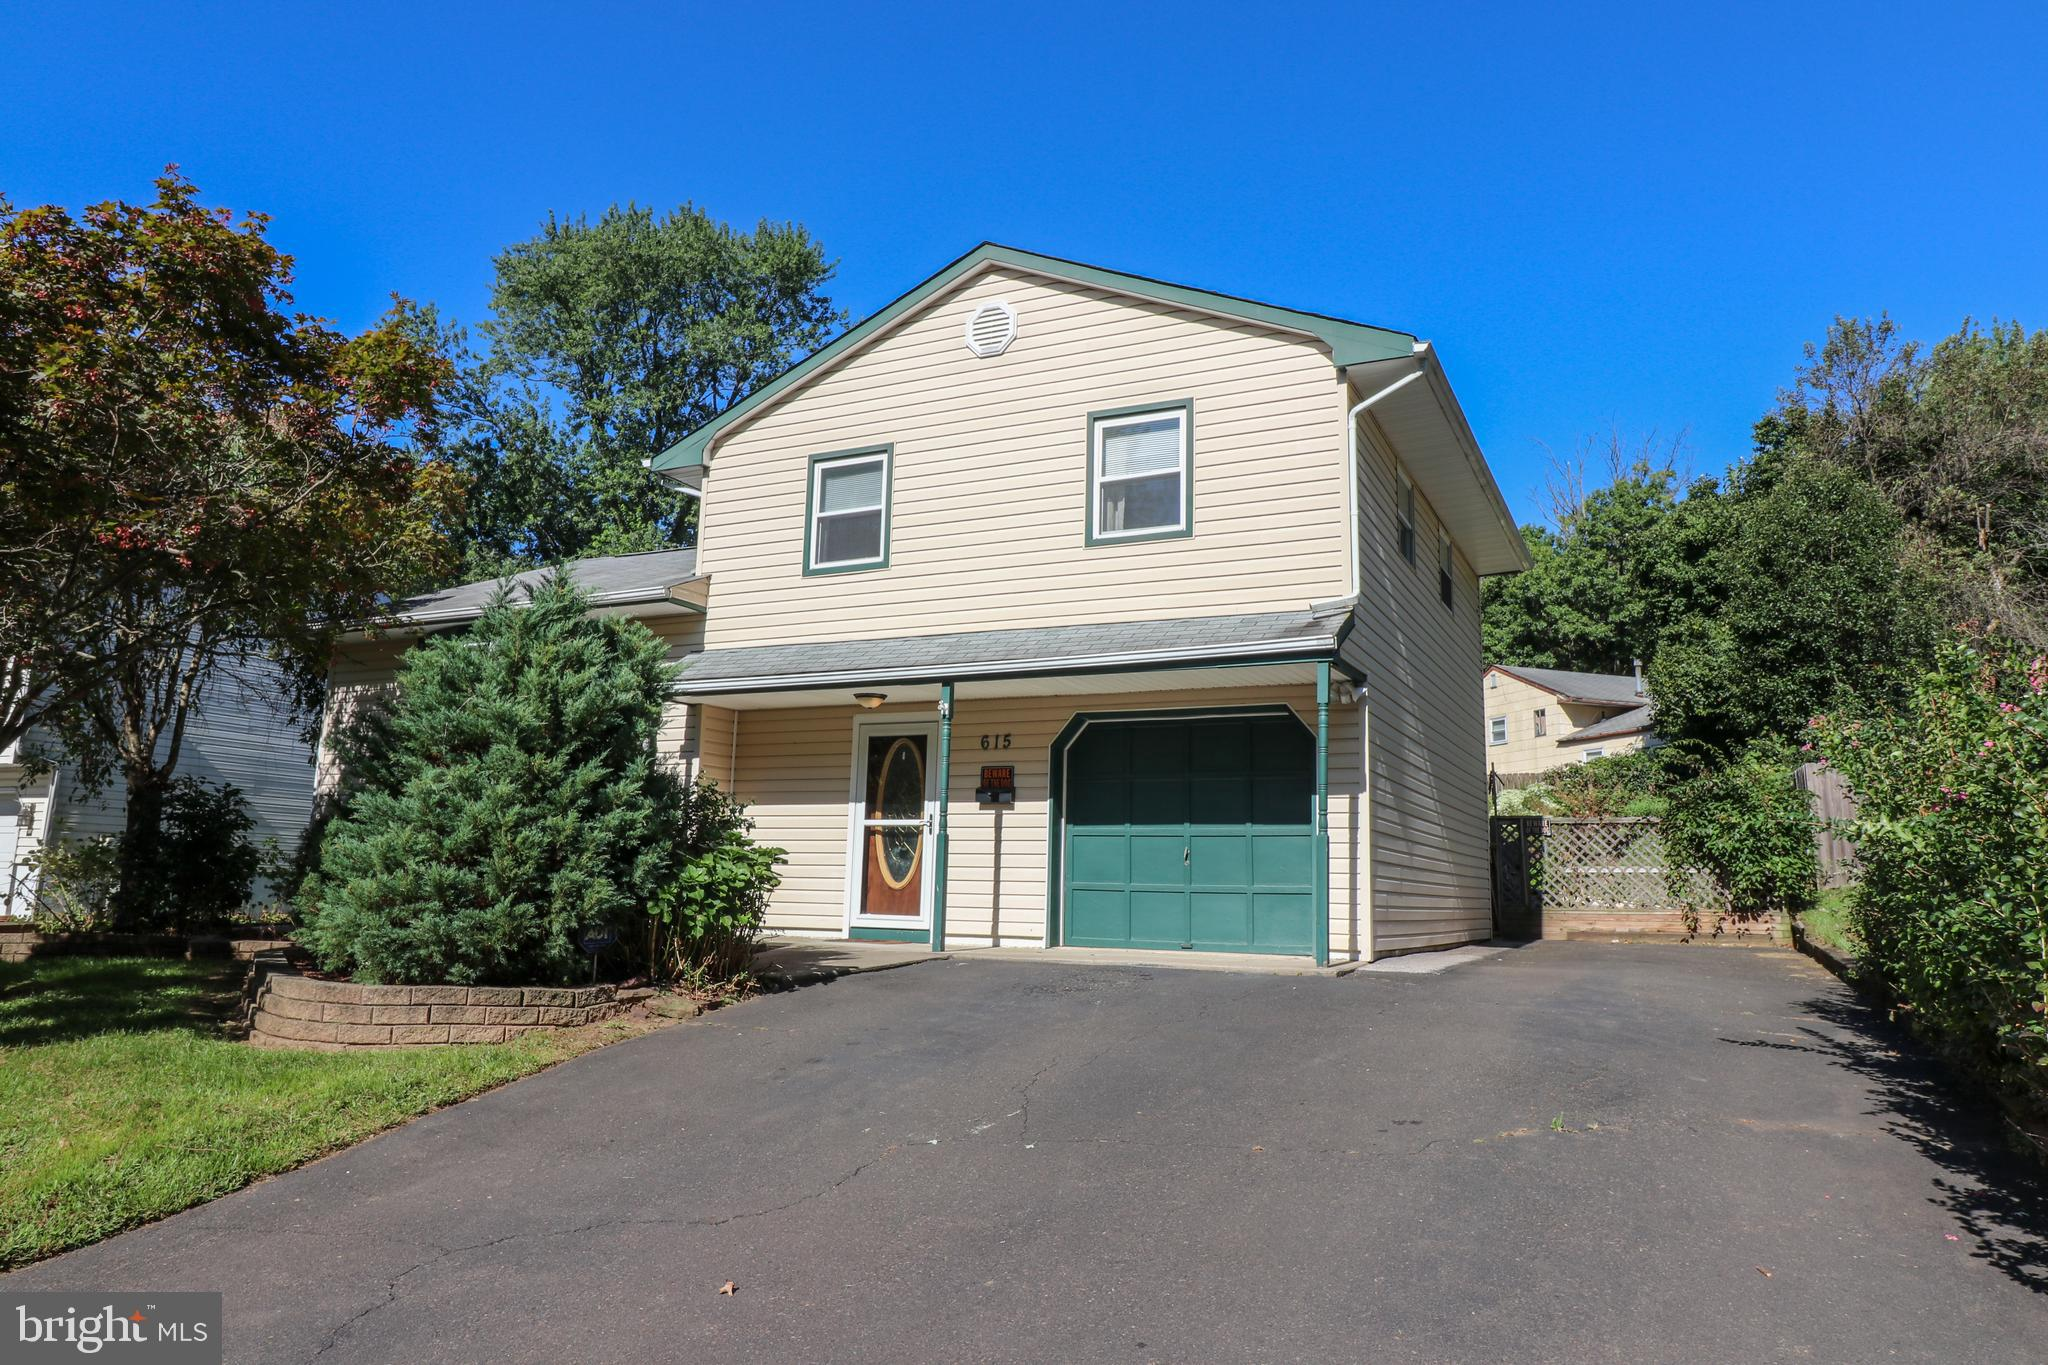 615 PARKWAY DRIVE, FAIRLESS HILLS, PA 19030